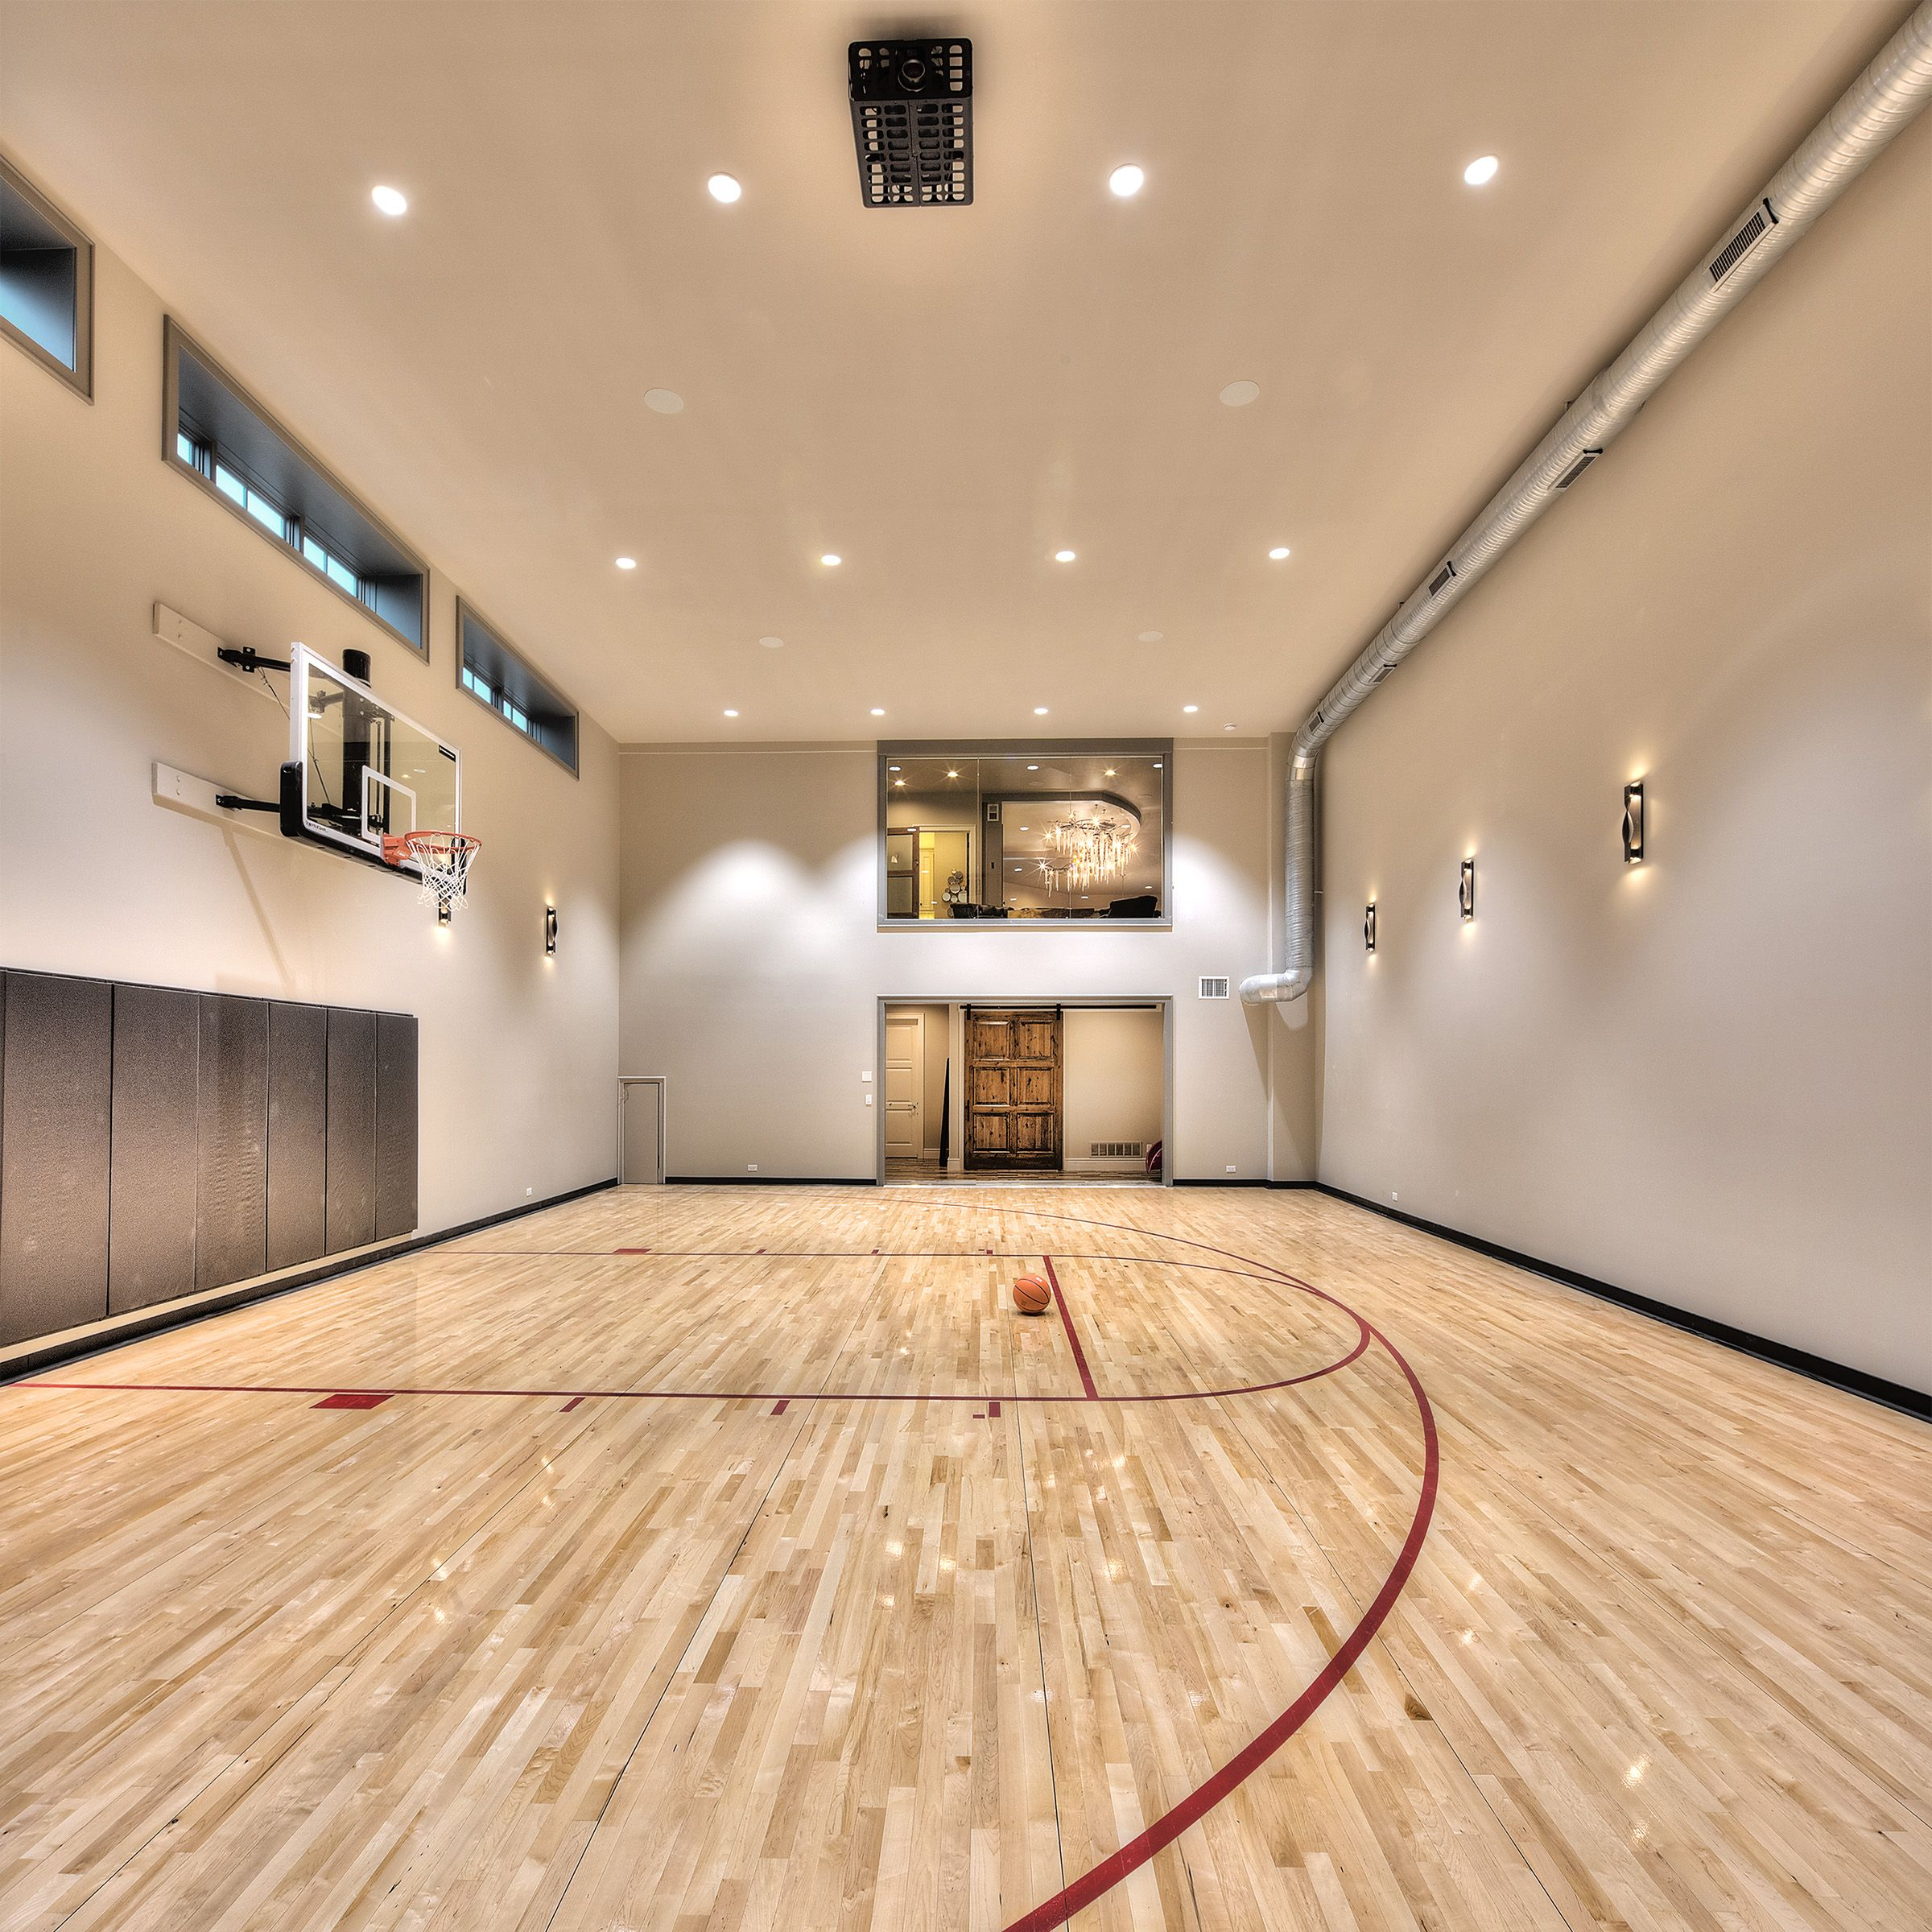 Home basketball court pinteres for Basketball court at home